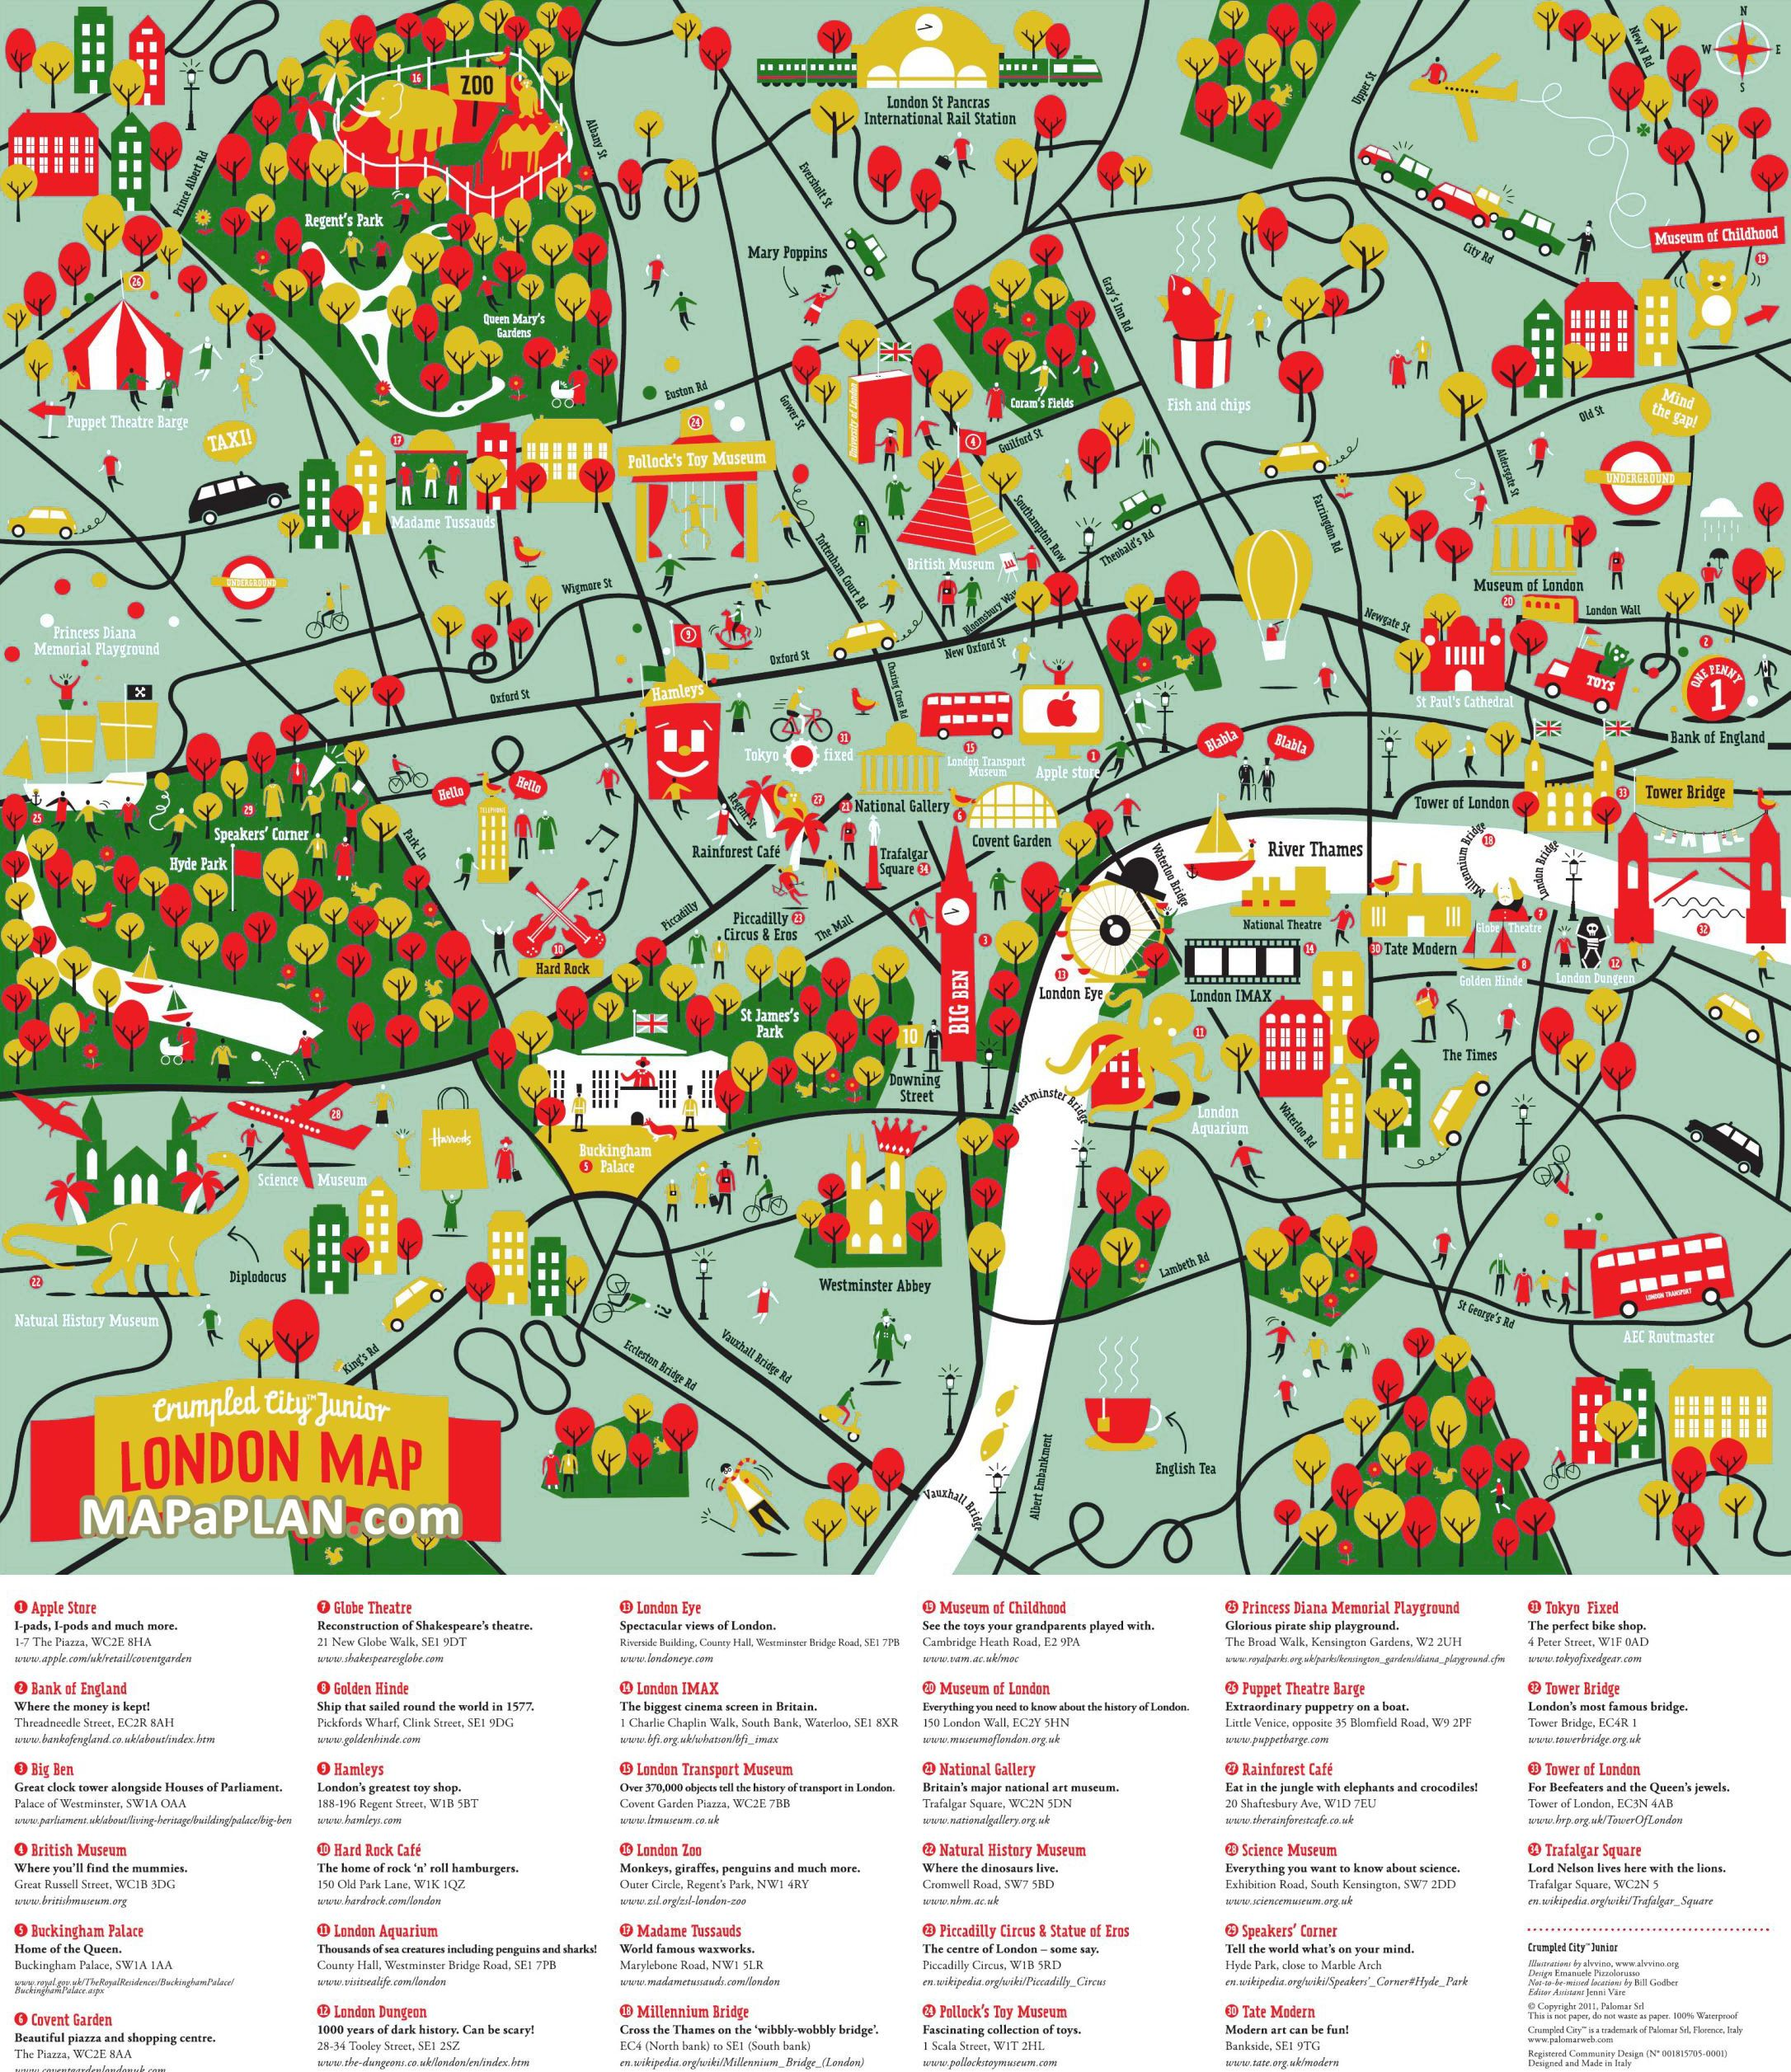 London Top Tourist Attractions Map Great Family Things To Do With Kids Colourful Map London Map London Tourist Attractions London Tourist Map